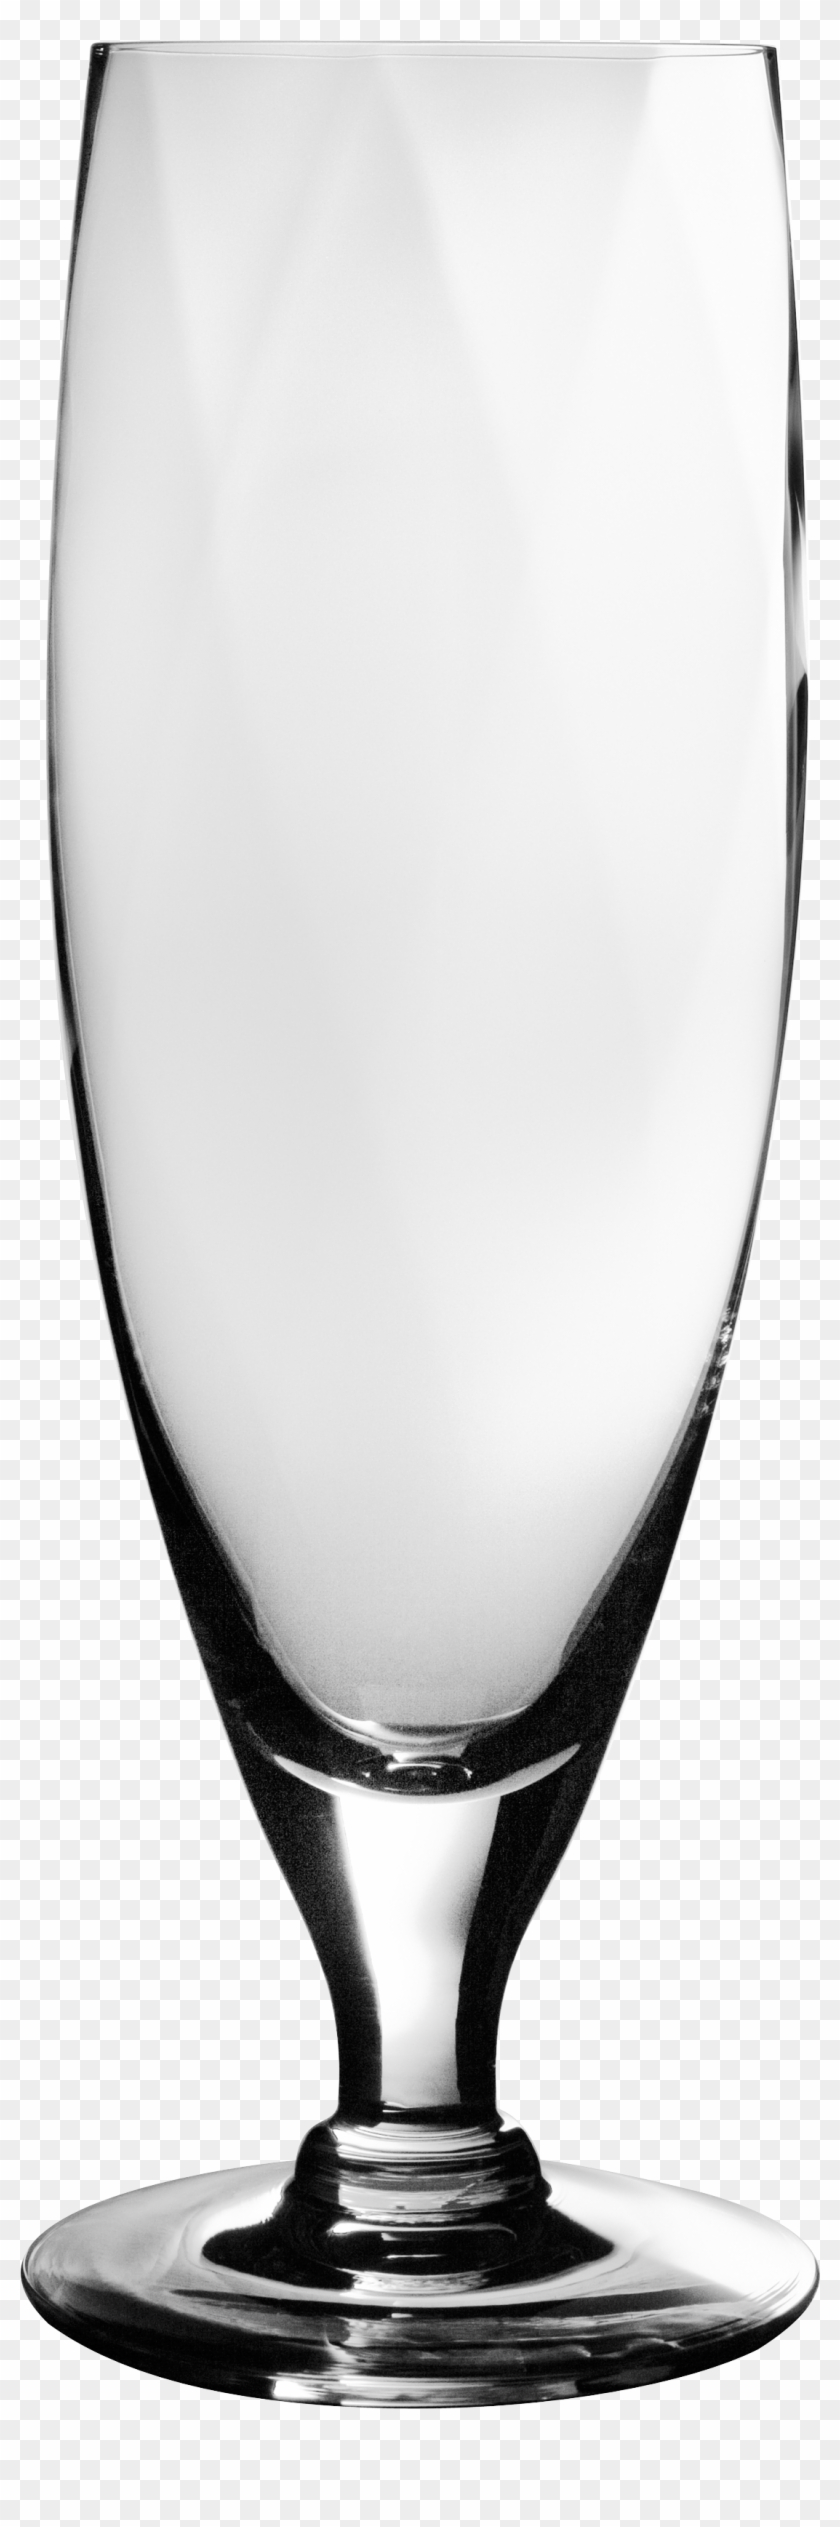 Empty Wine Glass Png Image - Glass Clipart #203420